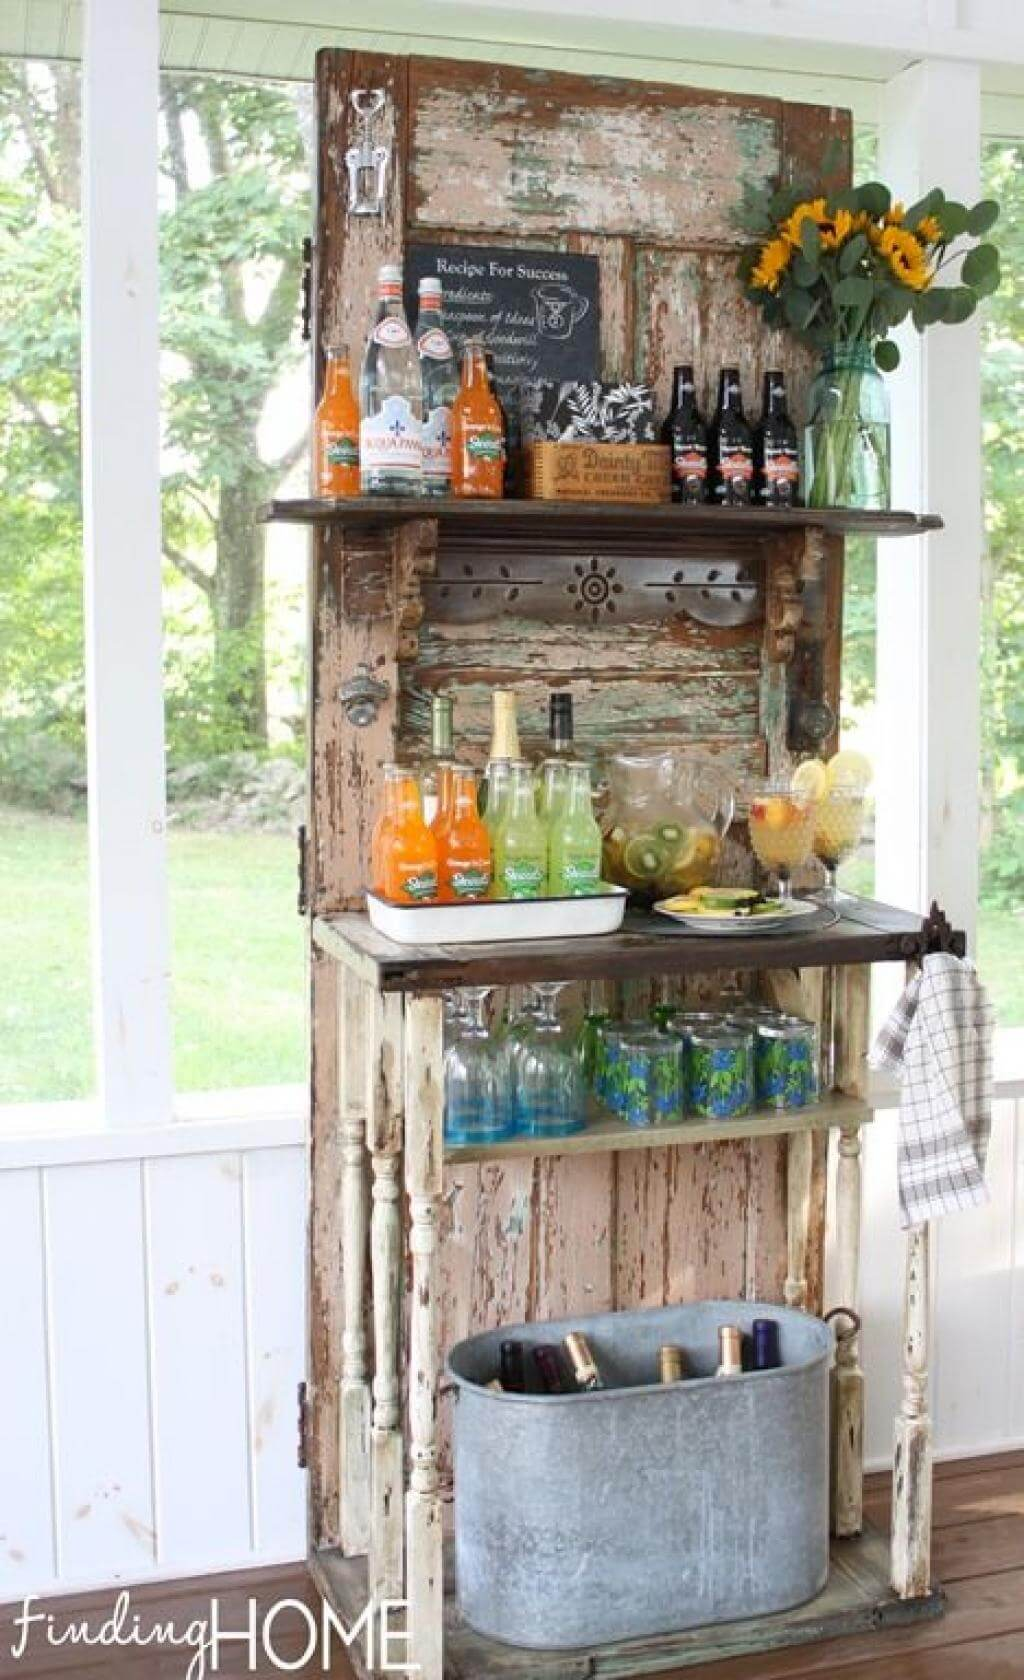 Weathered Door Garden Refreshment Stand